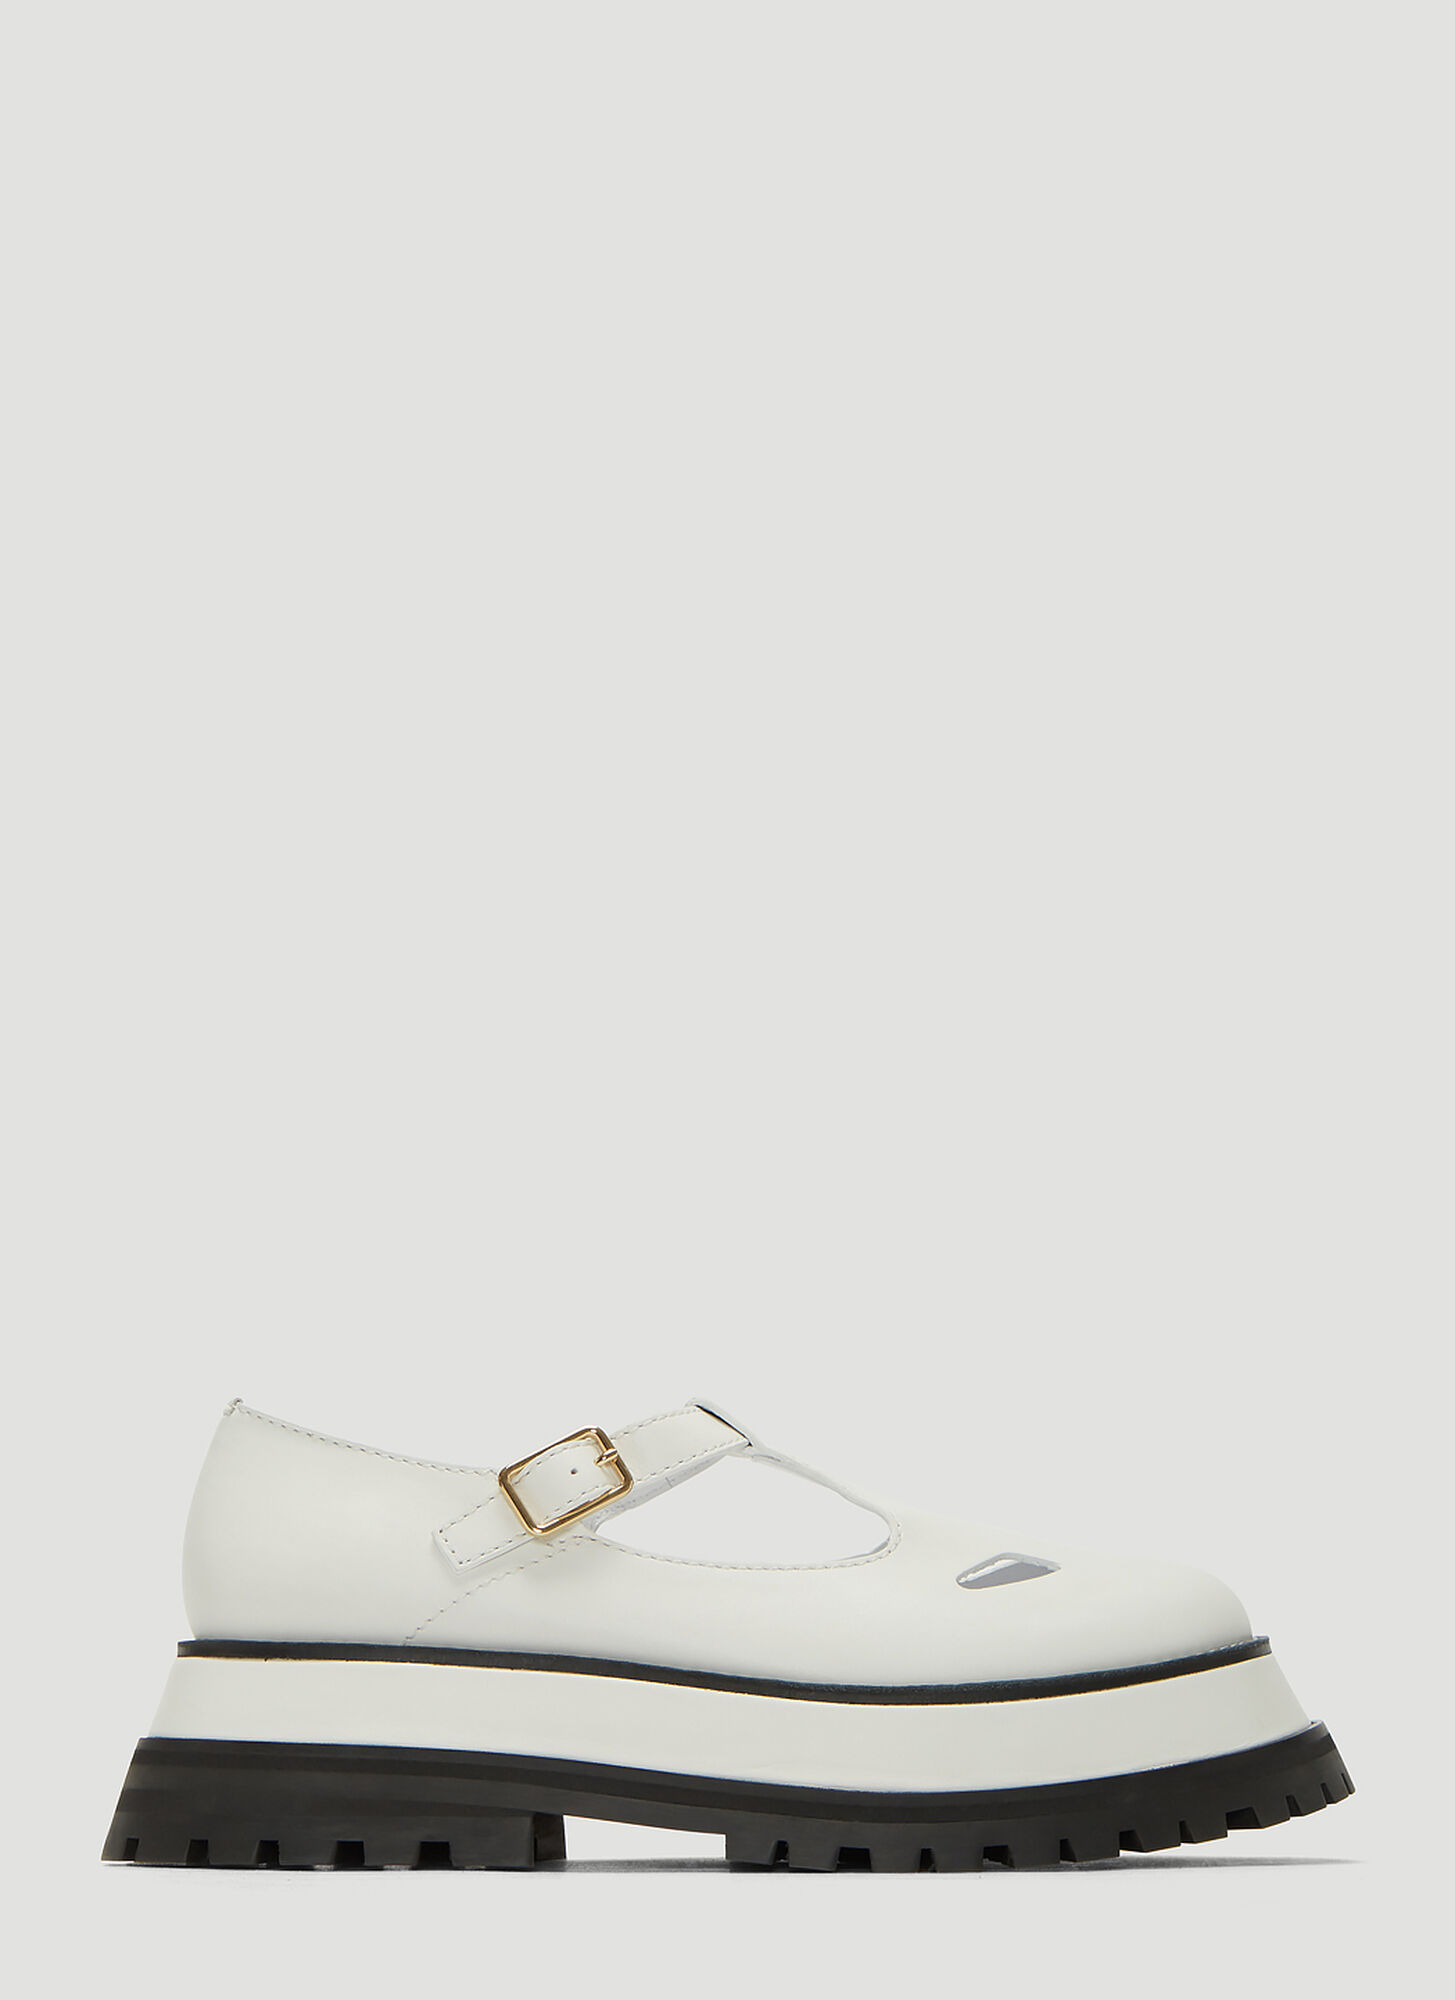 Burberry Aldwych Mary Jane Shoes in White